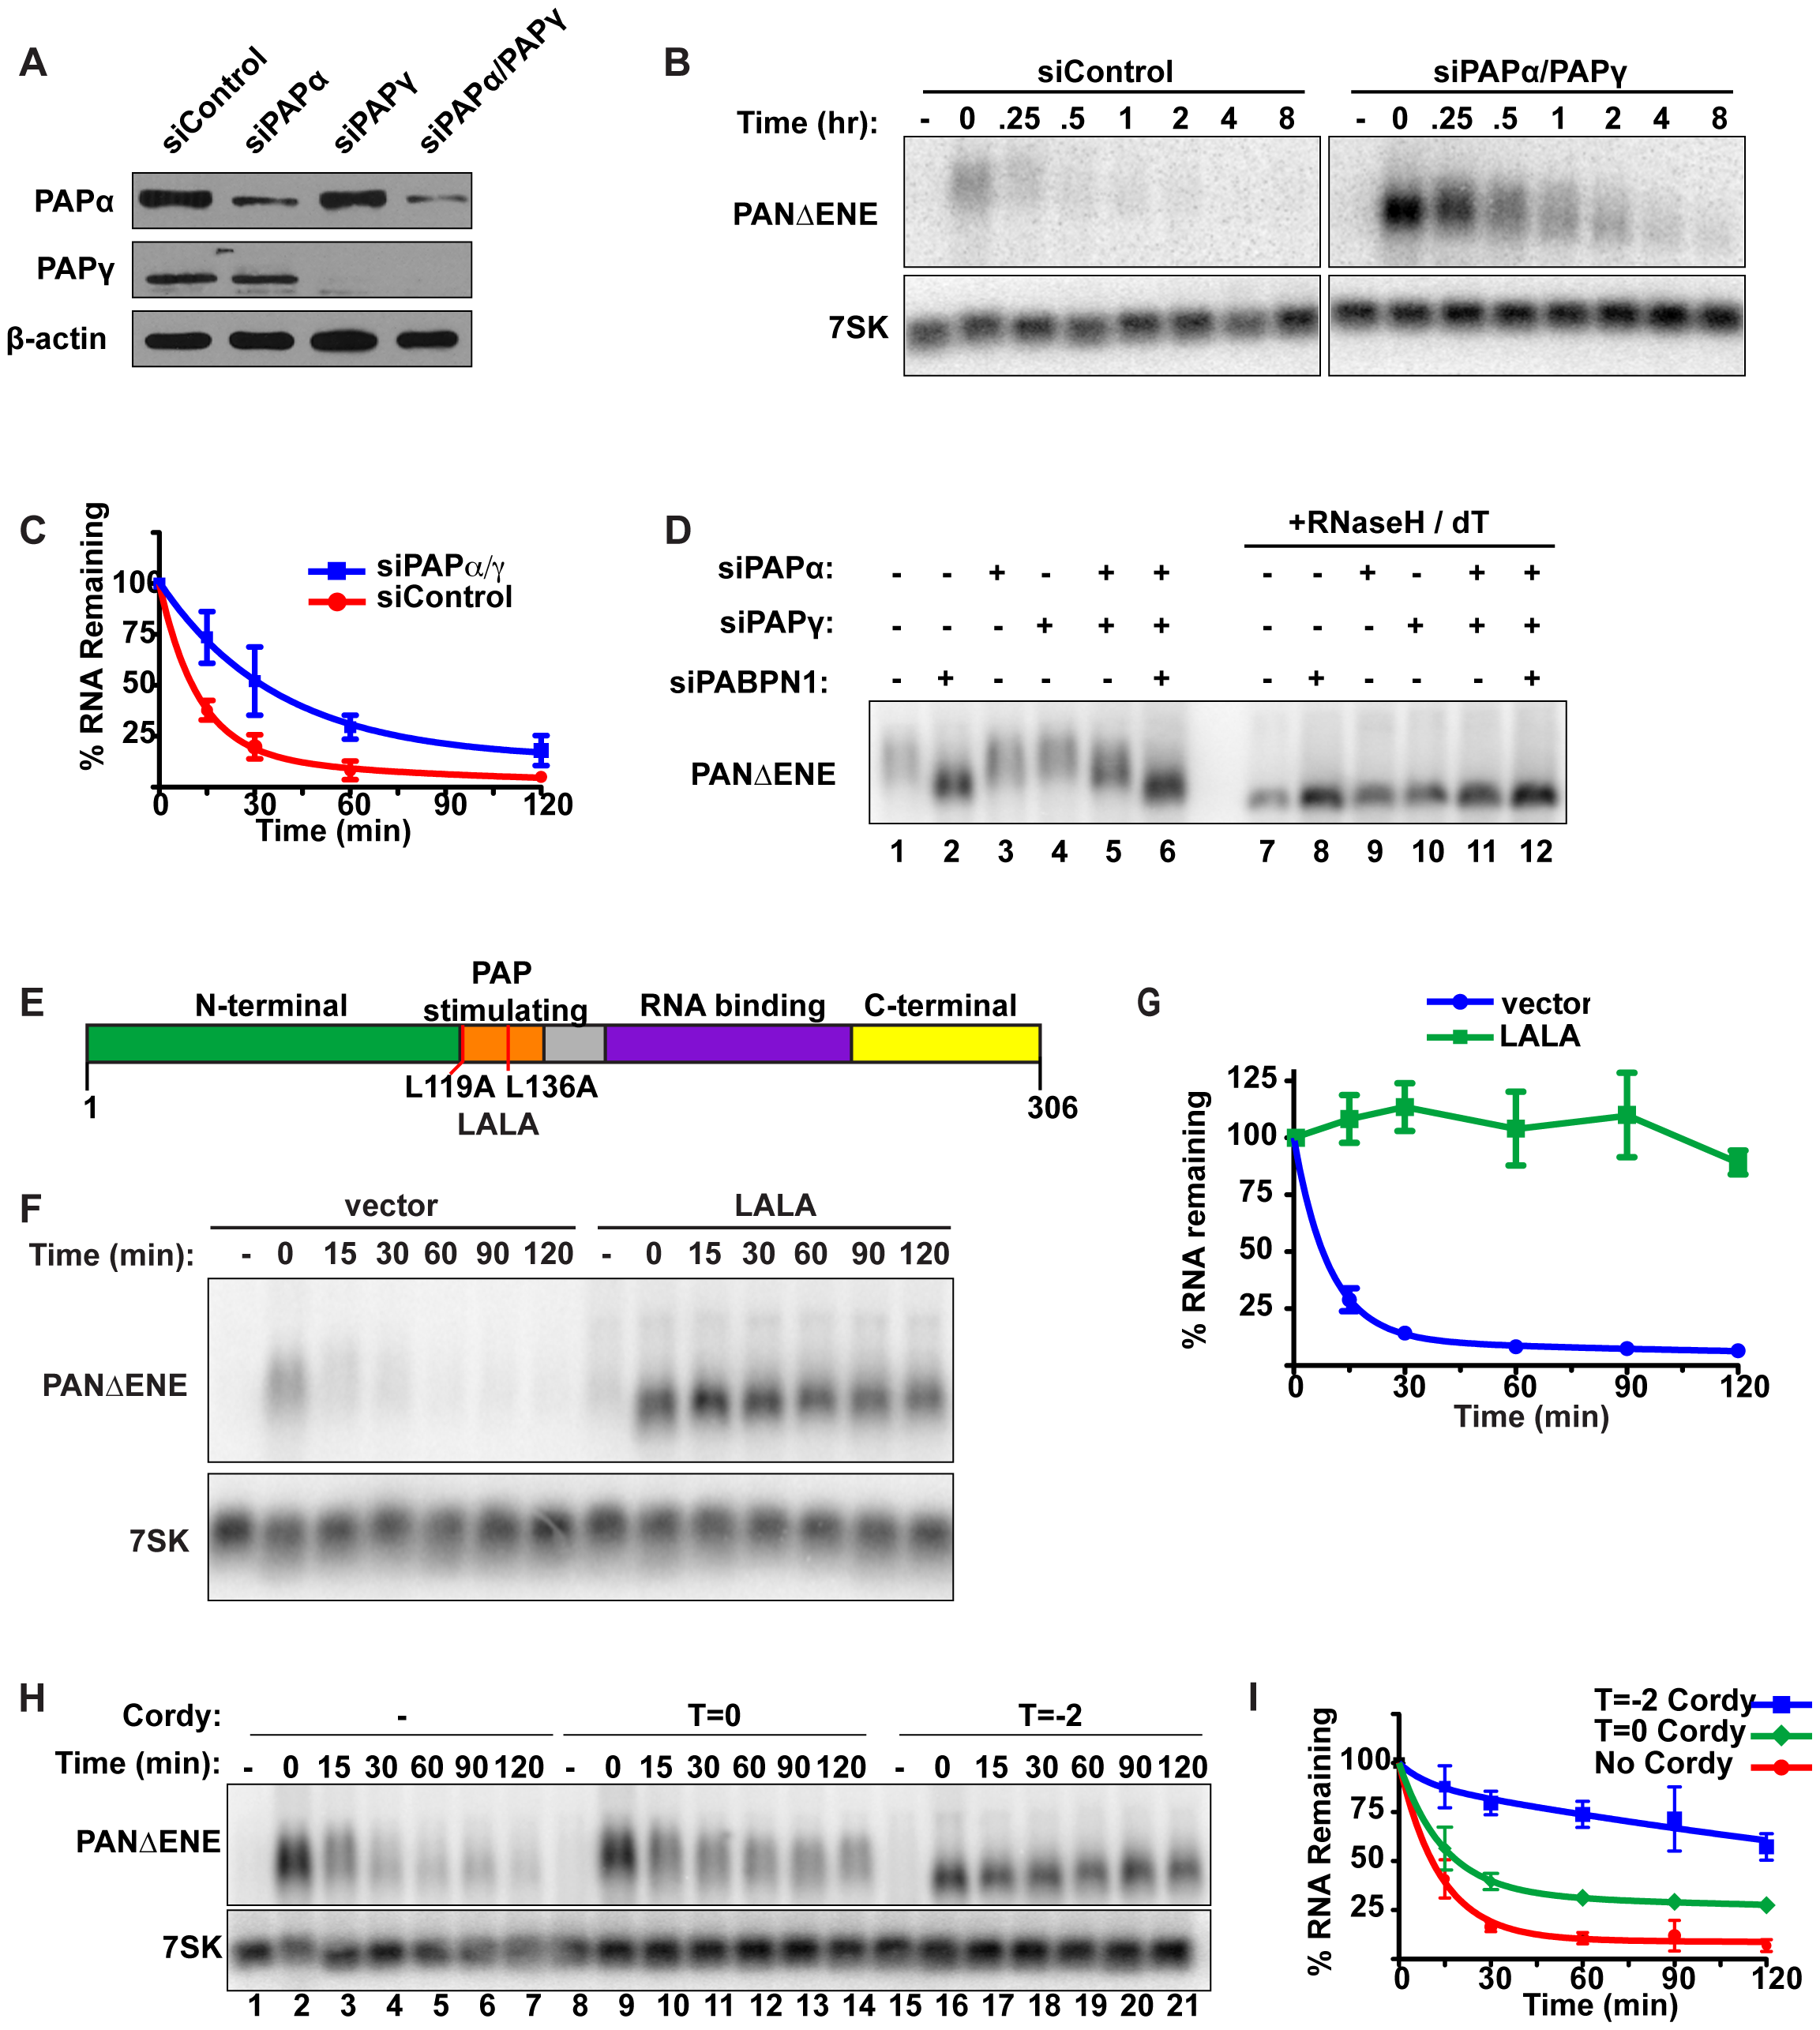 Polyadenylation is required for PANΔENE RNA decay.